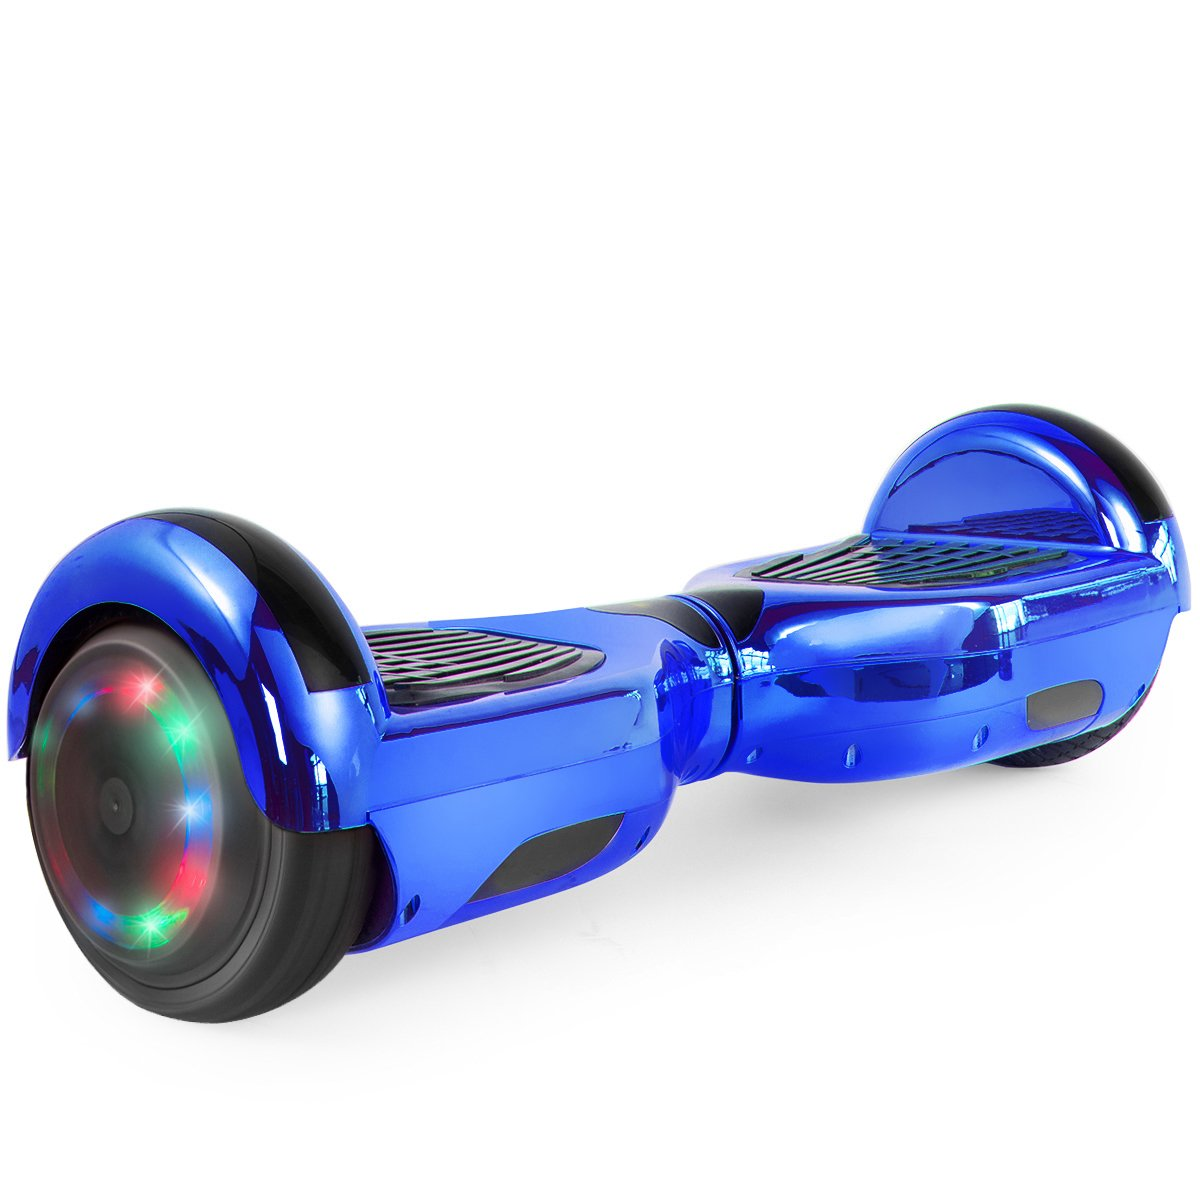 Self Balancing Scooter Hoverboard UL2272 Certified, w/ Bluetooth Speaker and LED Light (Blue)